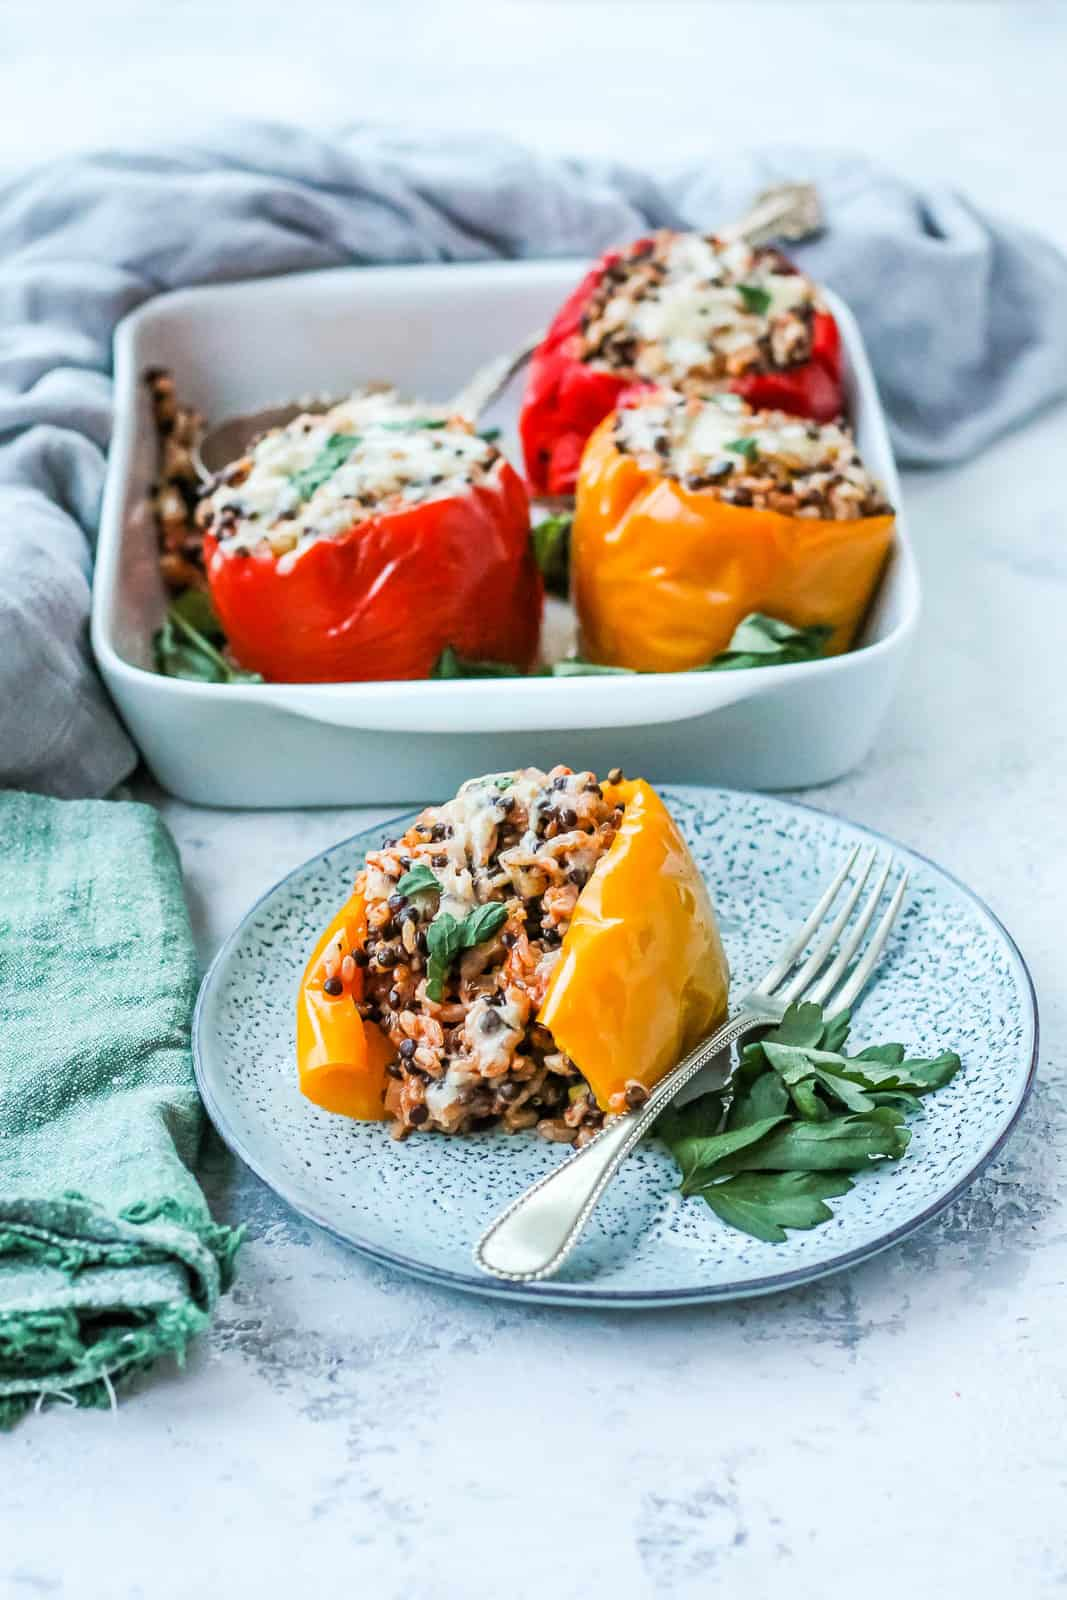 a yellow vegetarian stuffed pepper on a white plate with a silver fork on the side, and a casserole dish with three more stuffed peppers in the background